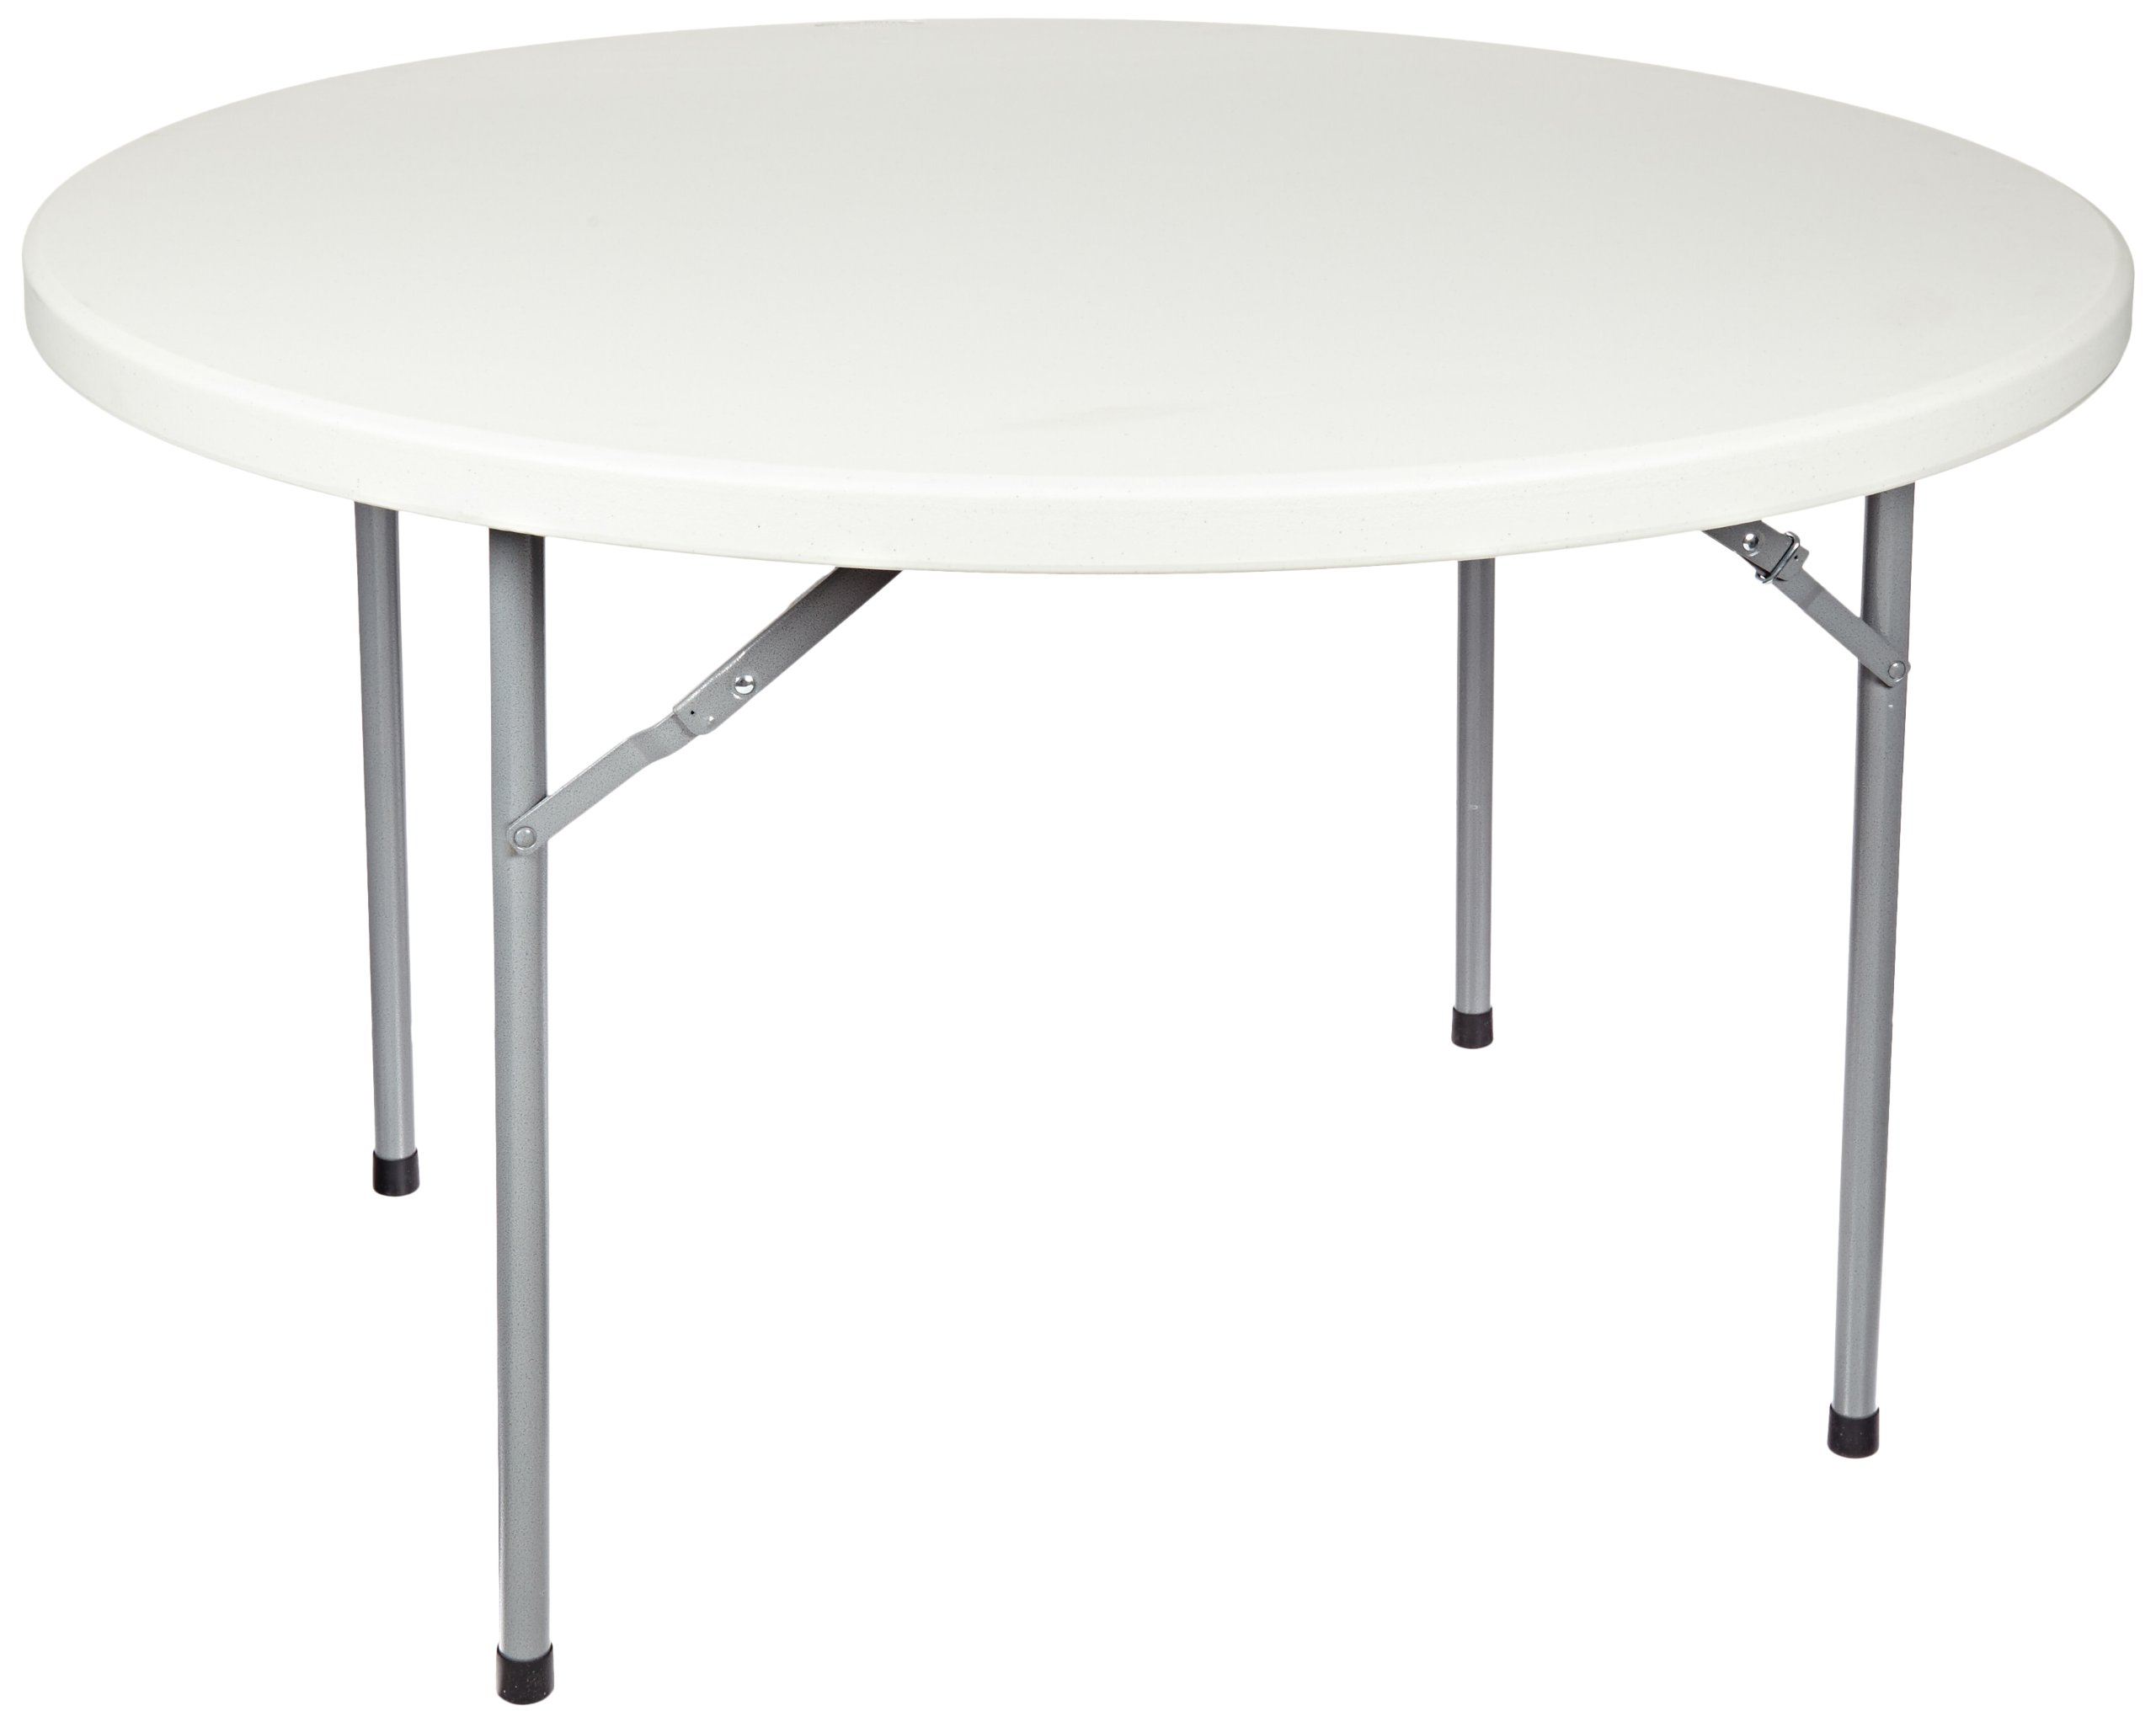 National Public Seating BT-R Series Steel Frame Round Blow Molded Plastic Top Folding Table, 700 lbs Capacity, 48'' Diameter x 29-1/2'' Height, Speckled Gray/Gray